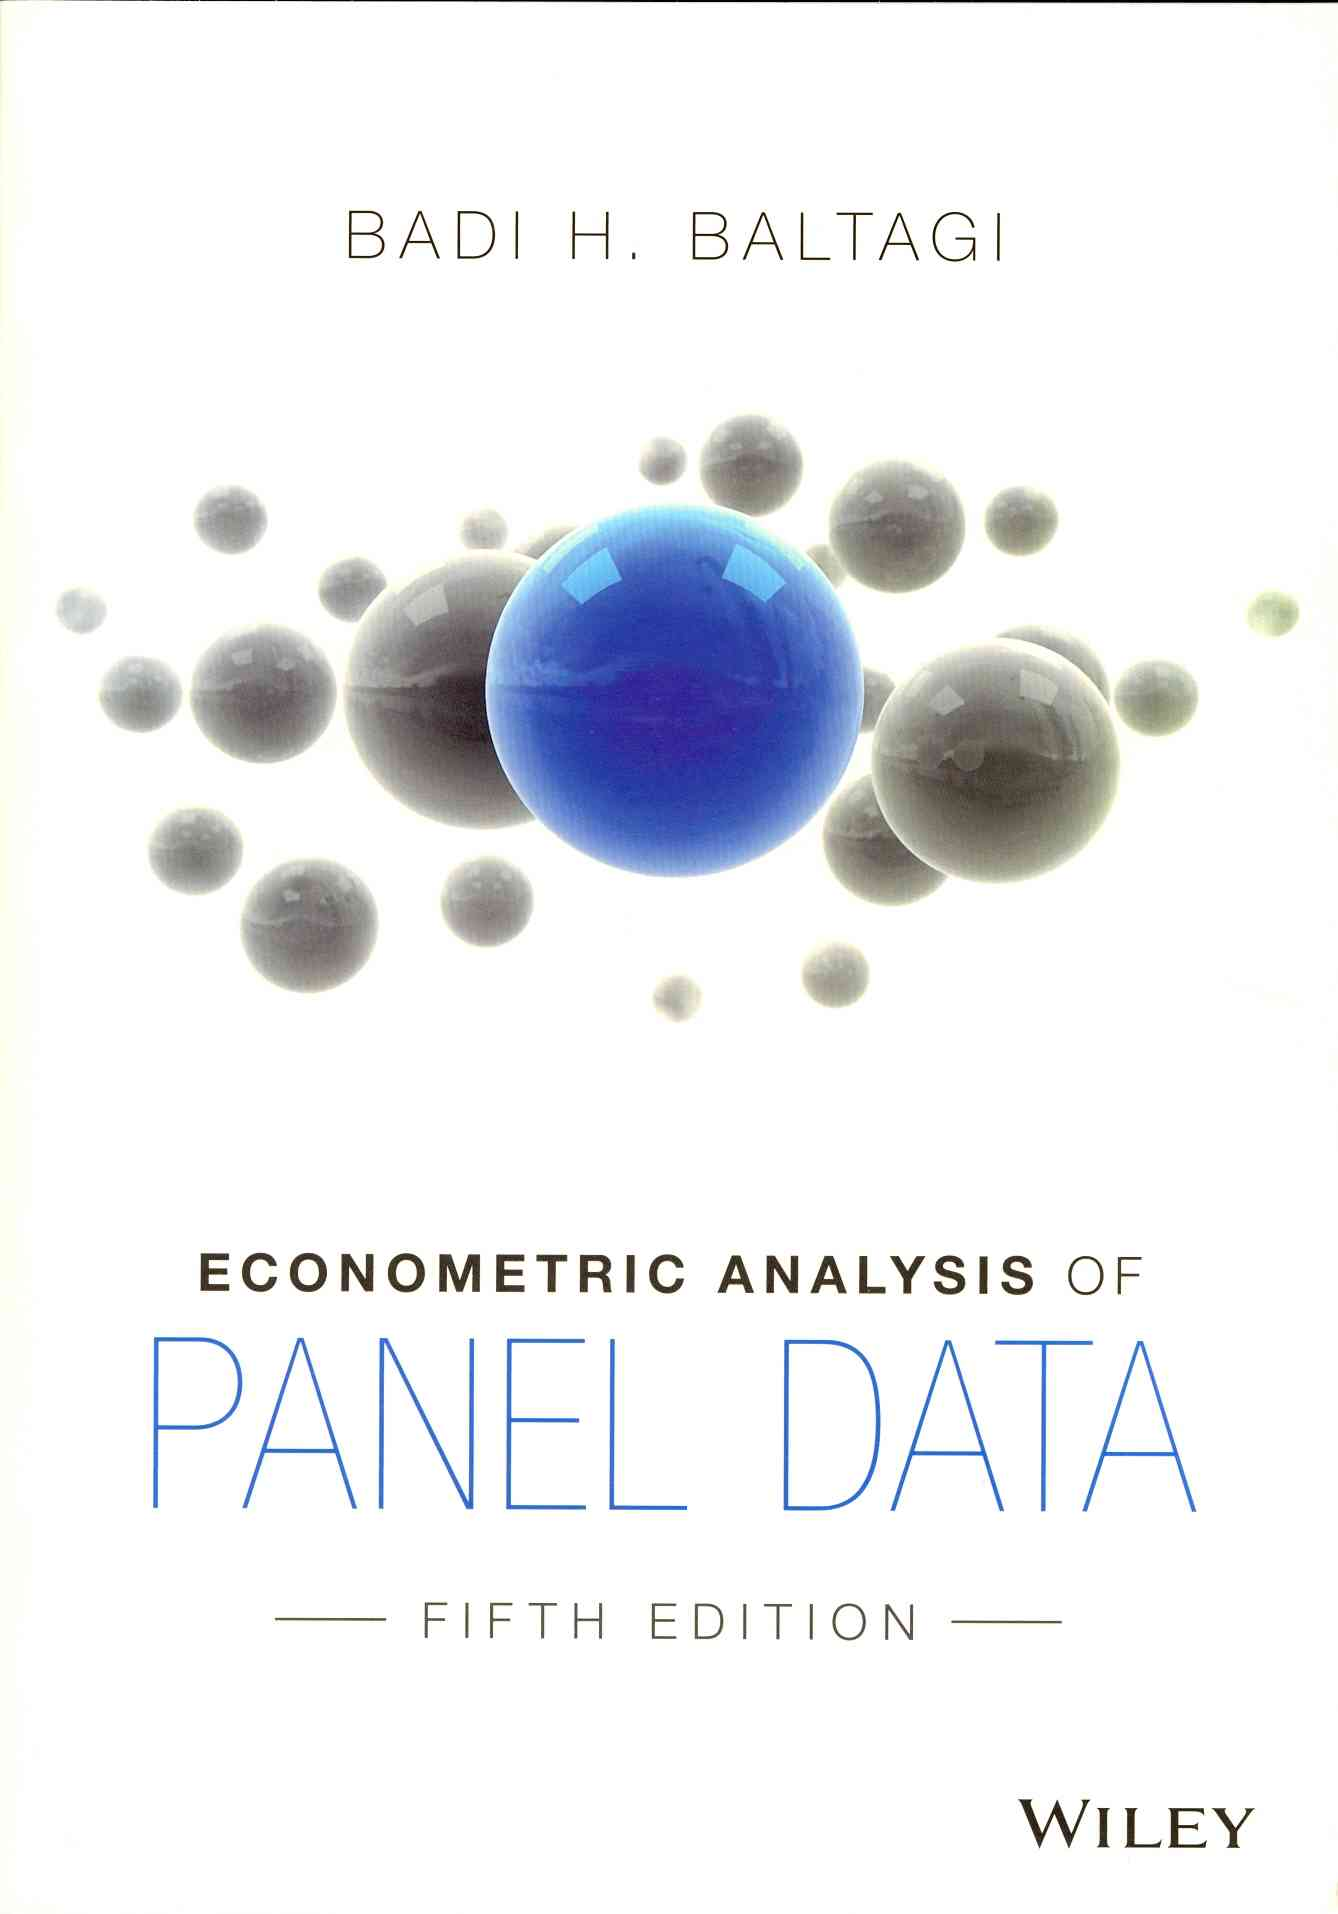 Econometric Analysis of Panel Data By Baltagi, Badi H.